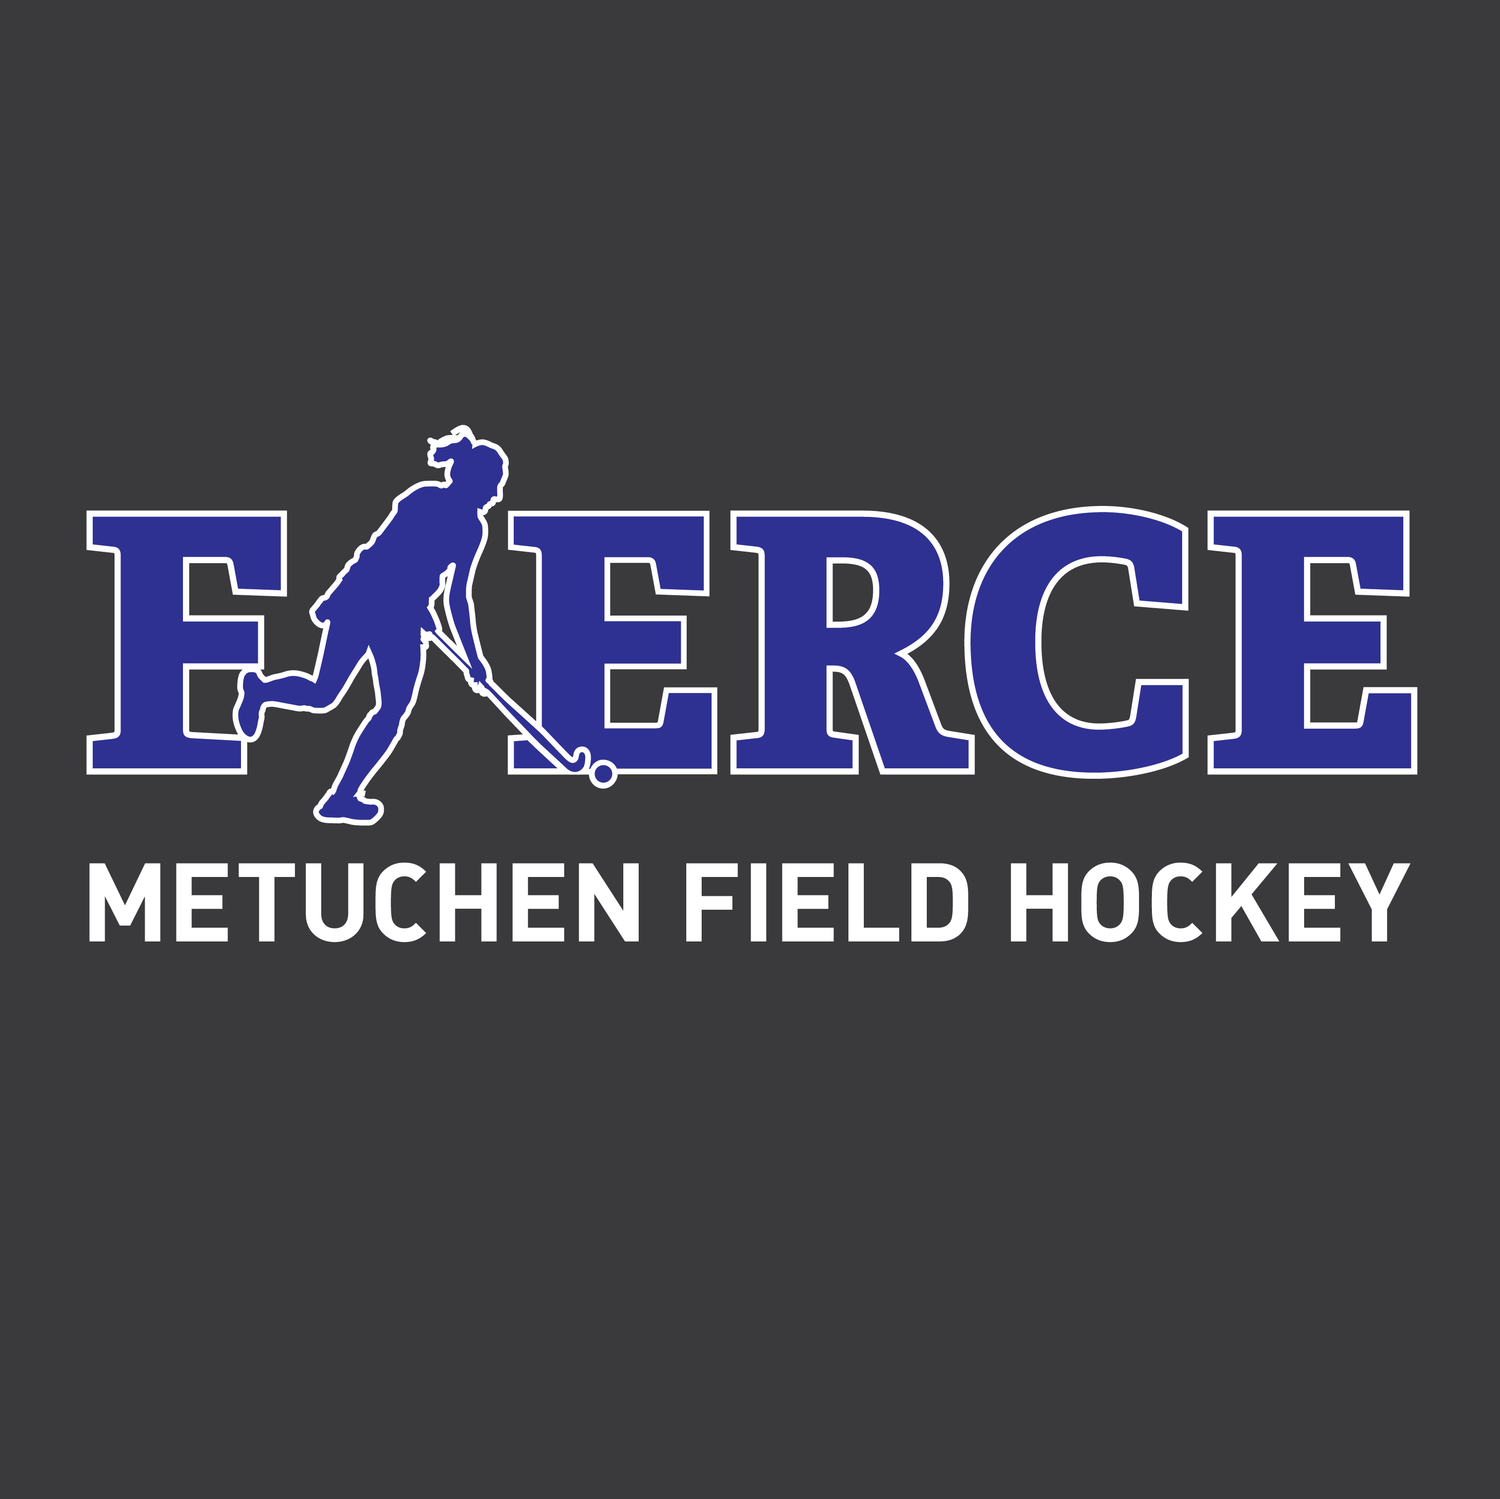 Metuchen JR Field Hockey